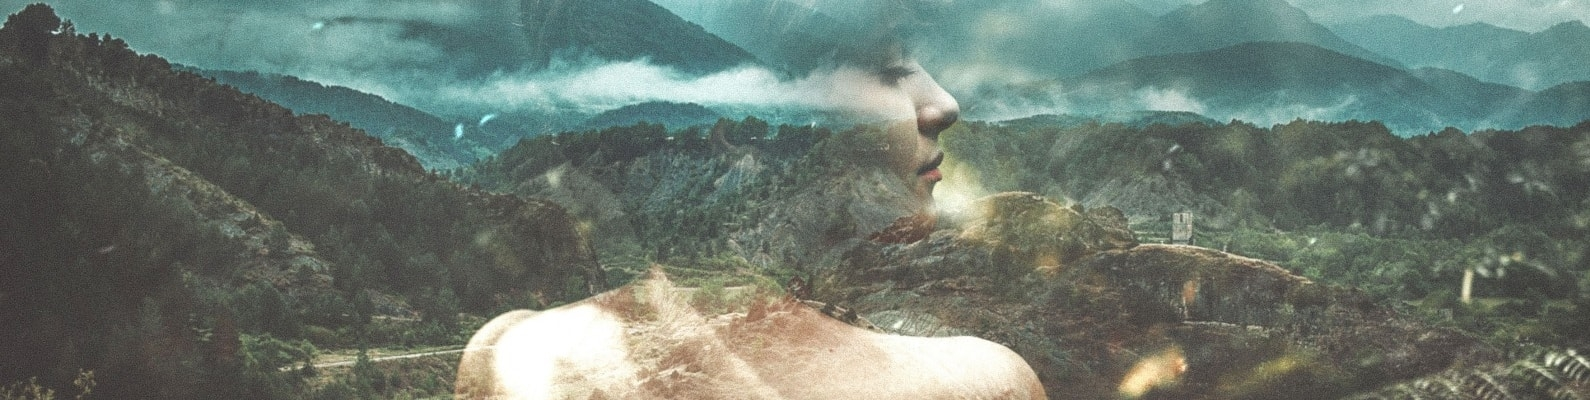 double exposure, forest, clouds, river, girl, hills